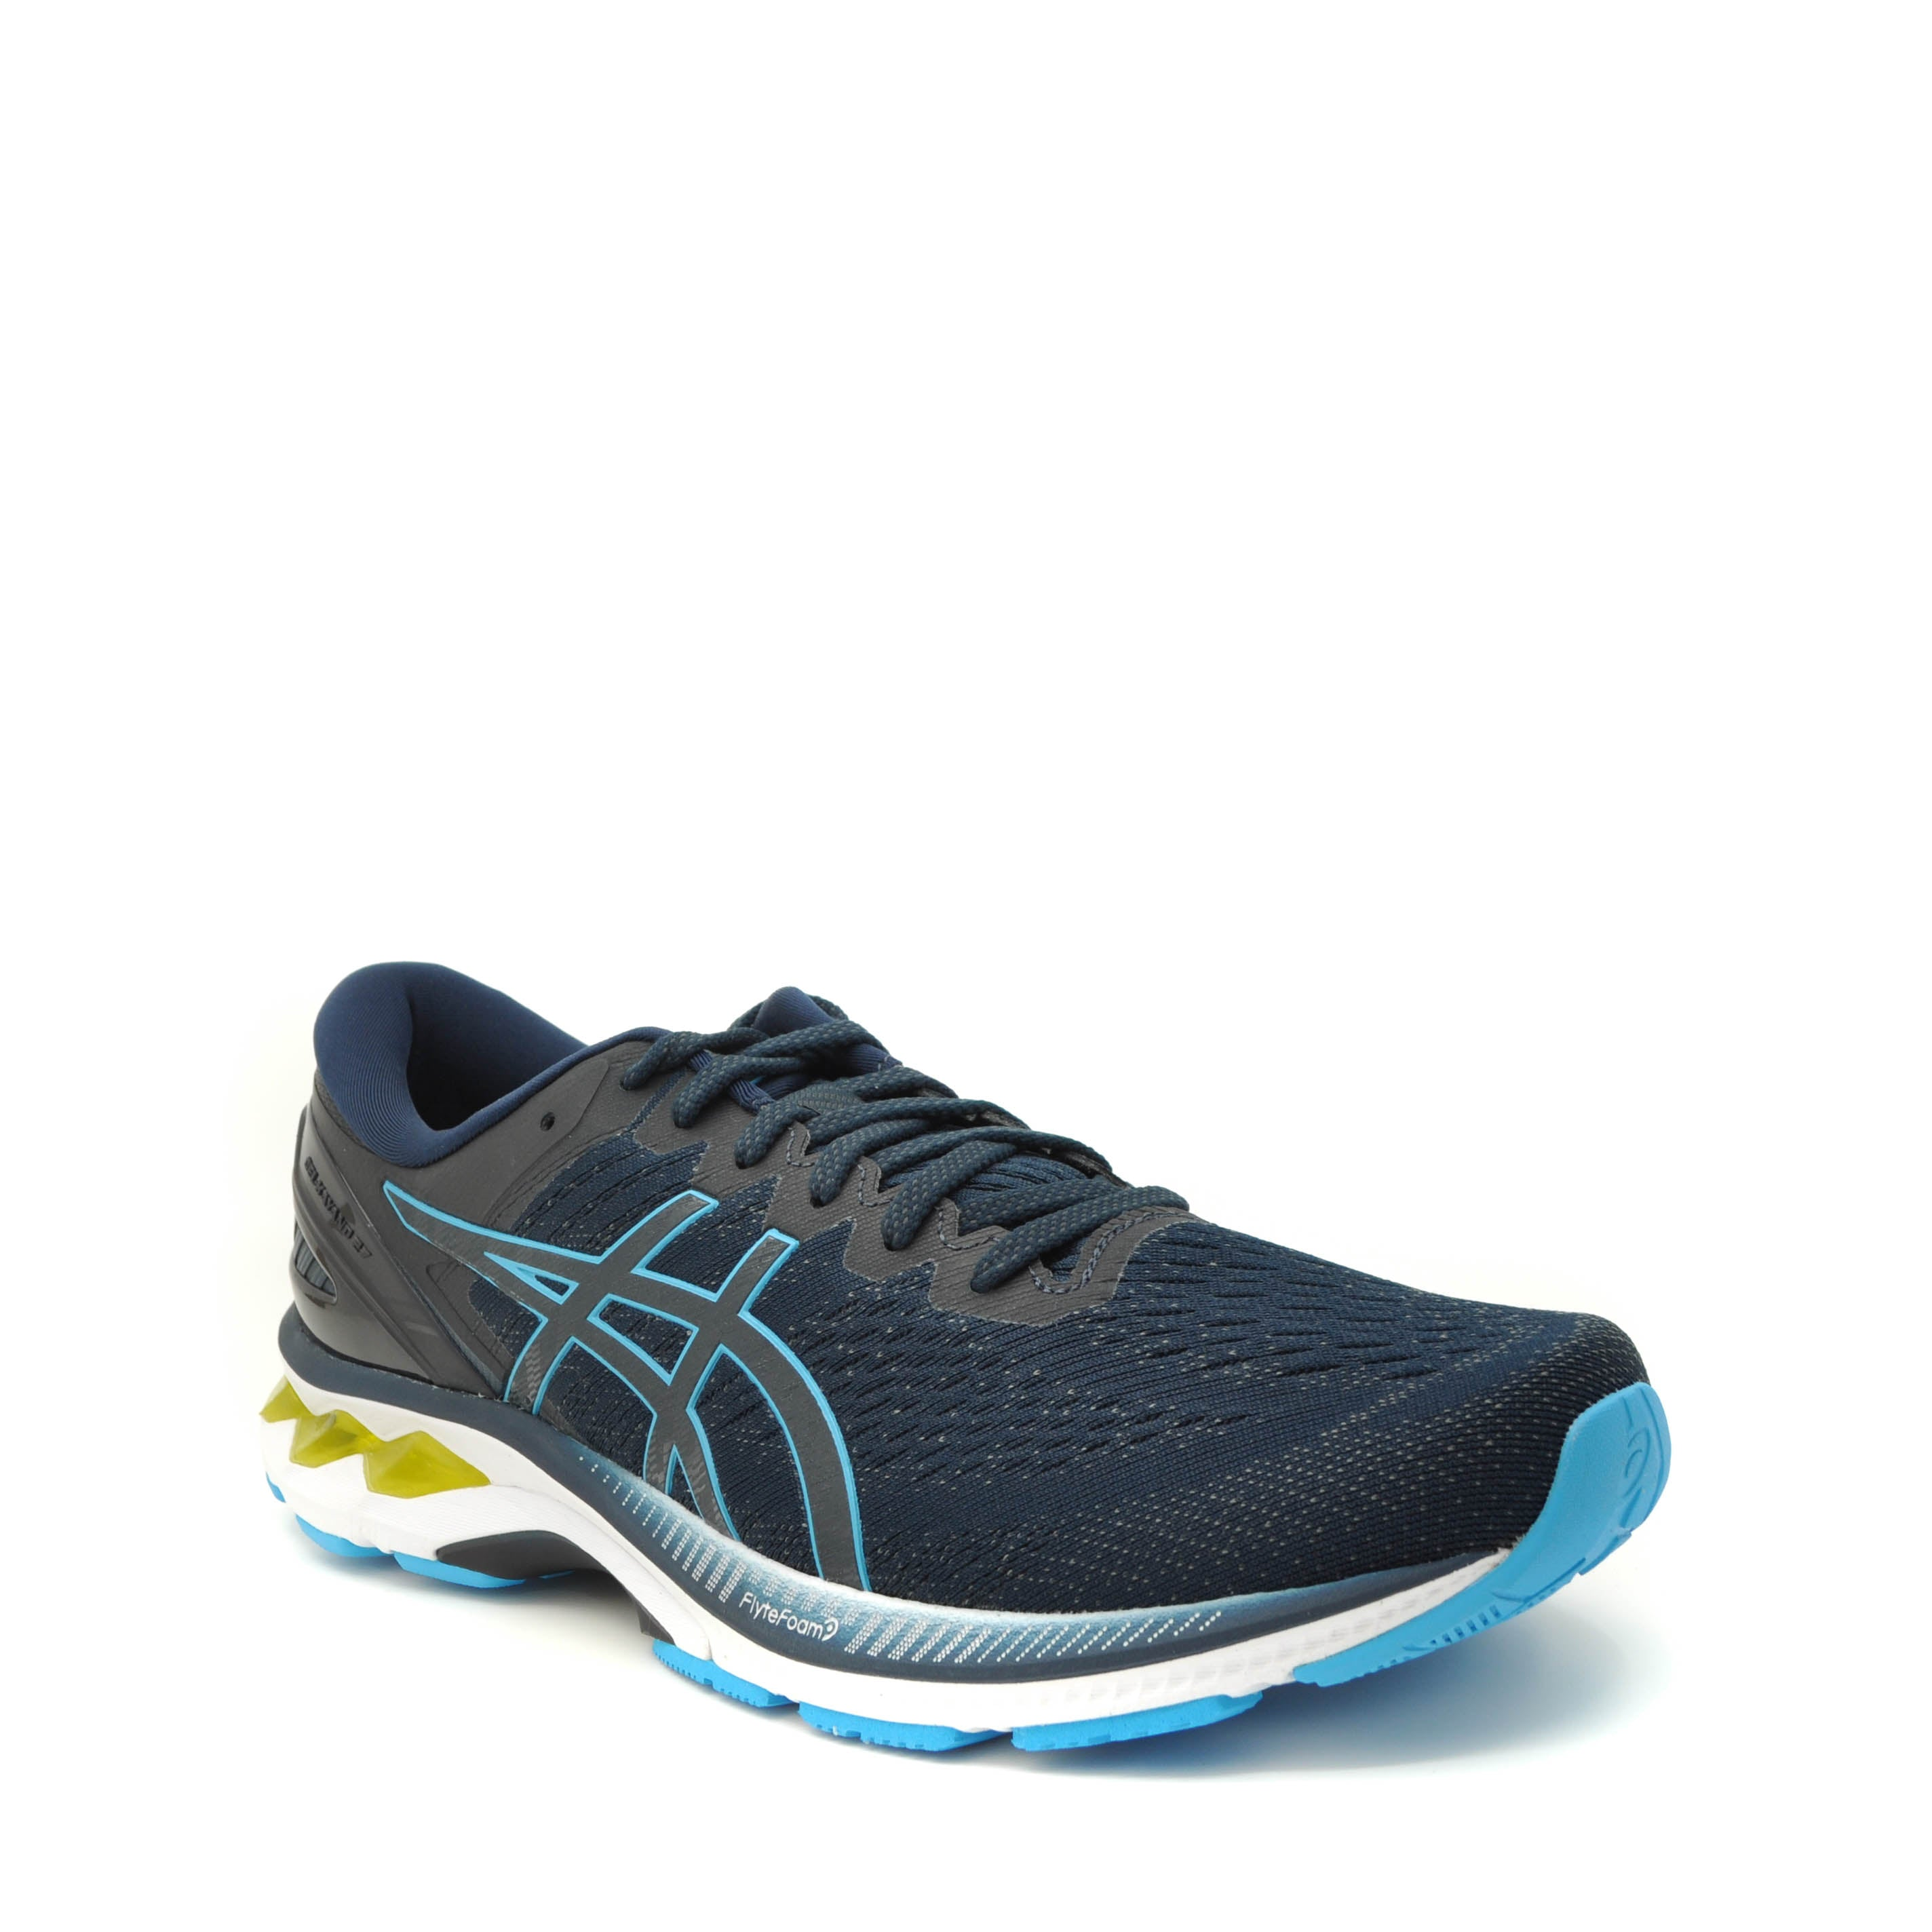 Asics Mens Trainers navy